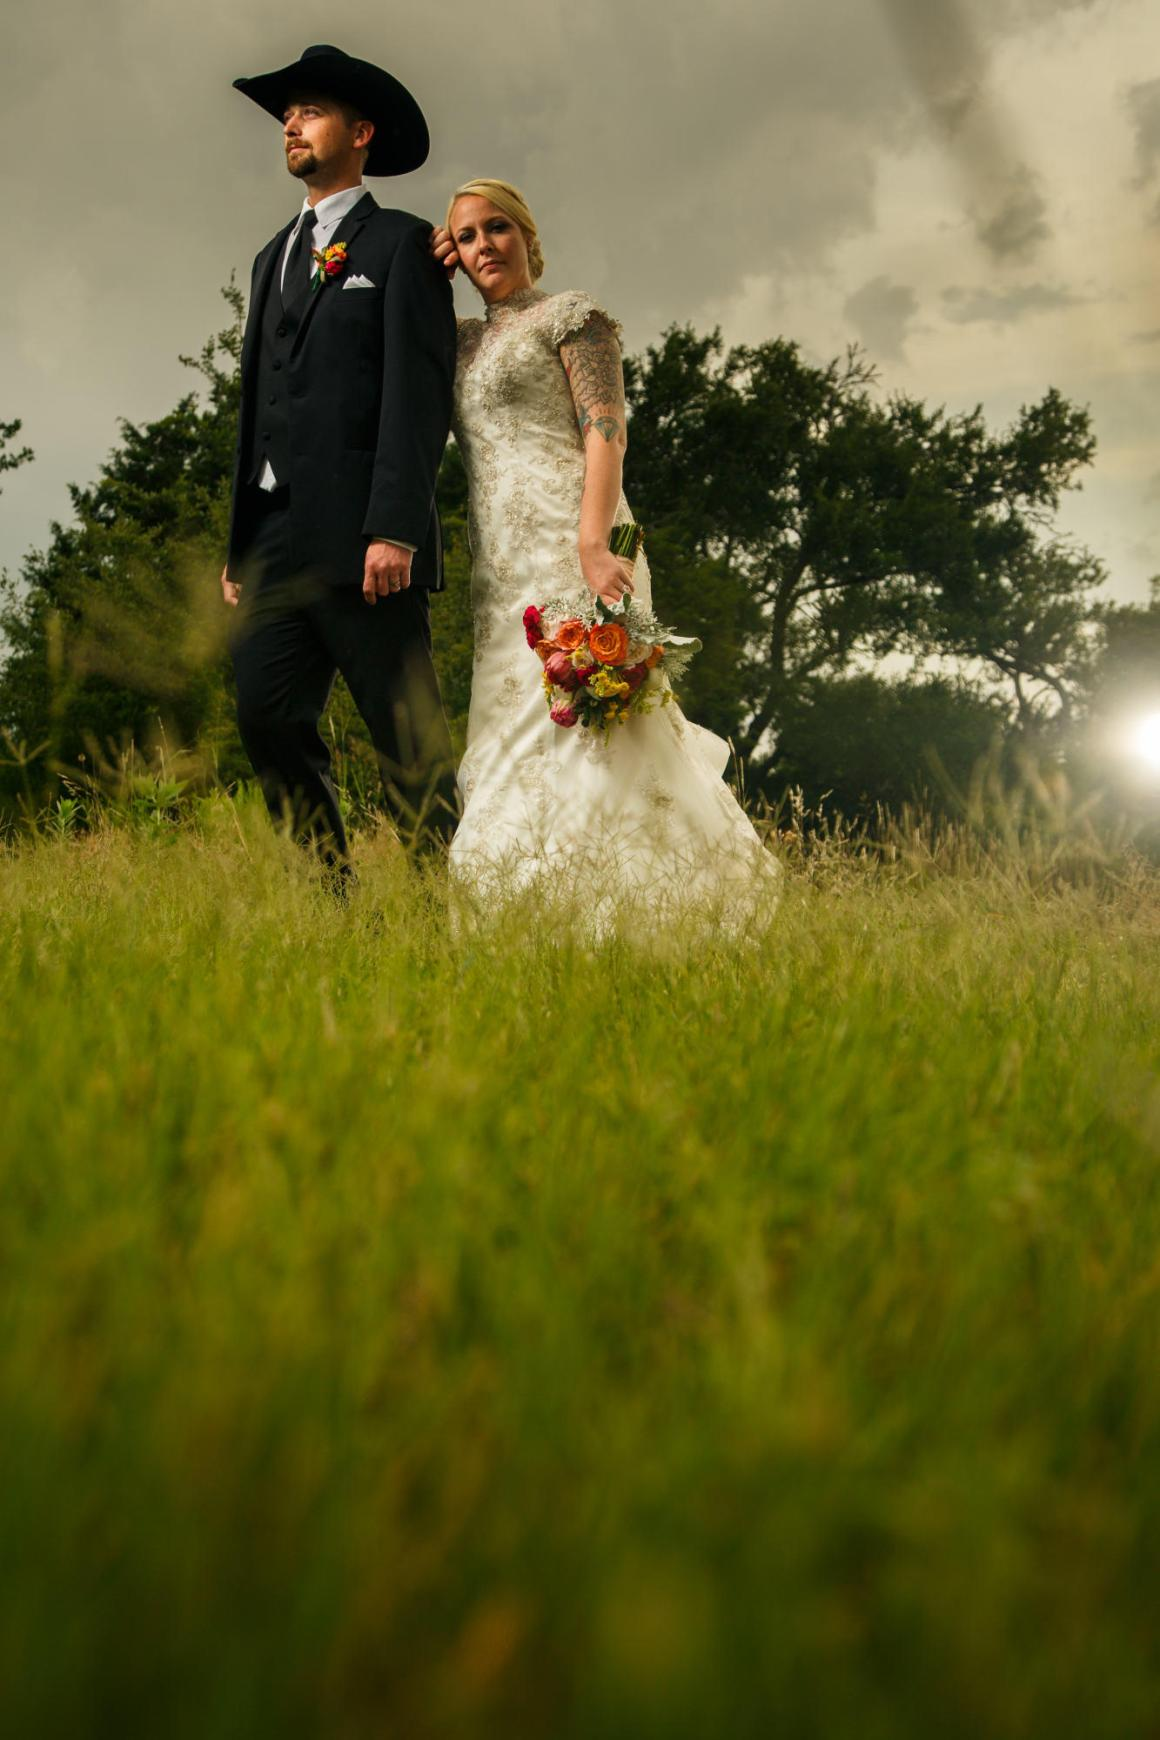 Wes and Cheyenne Wedding Portrait at TerrAdorna in Manor, Tx